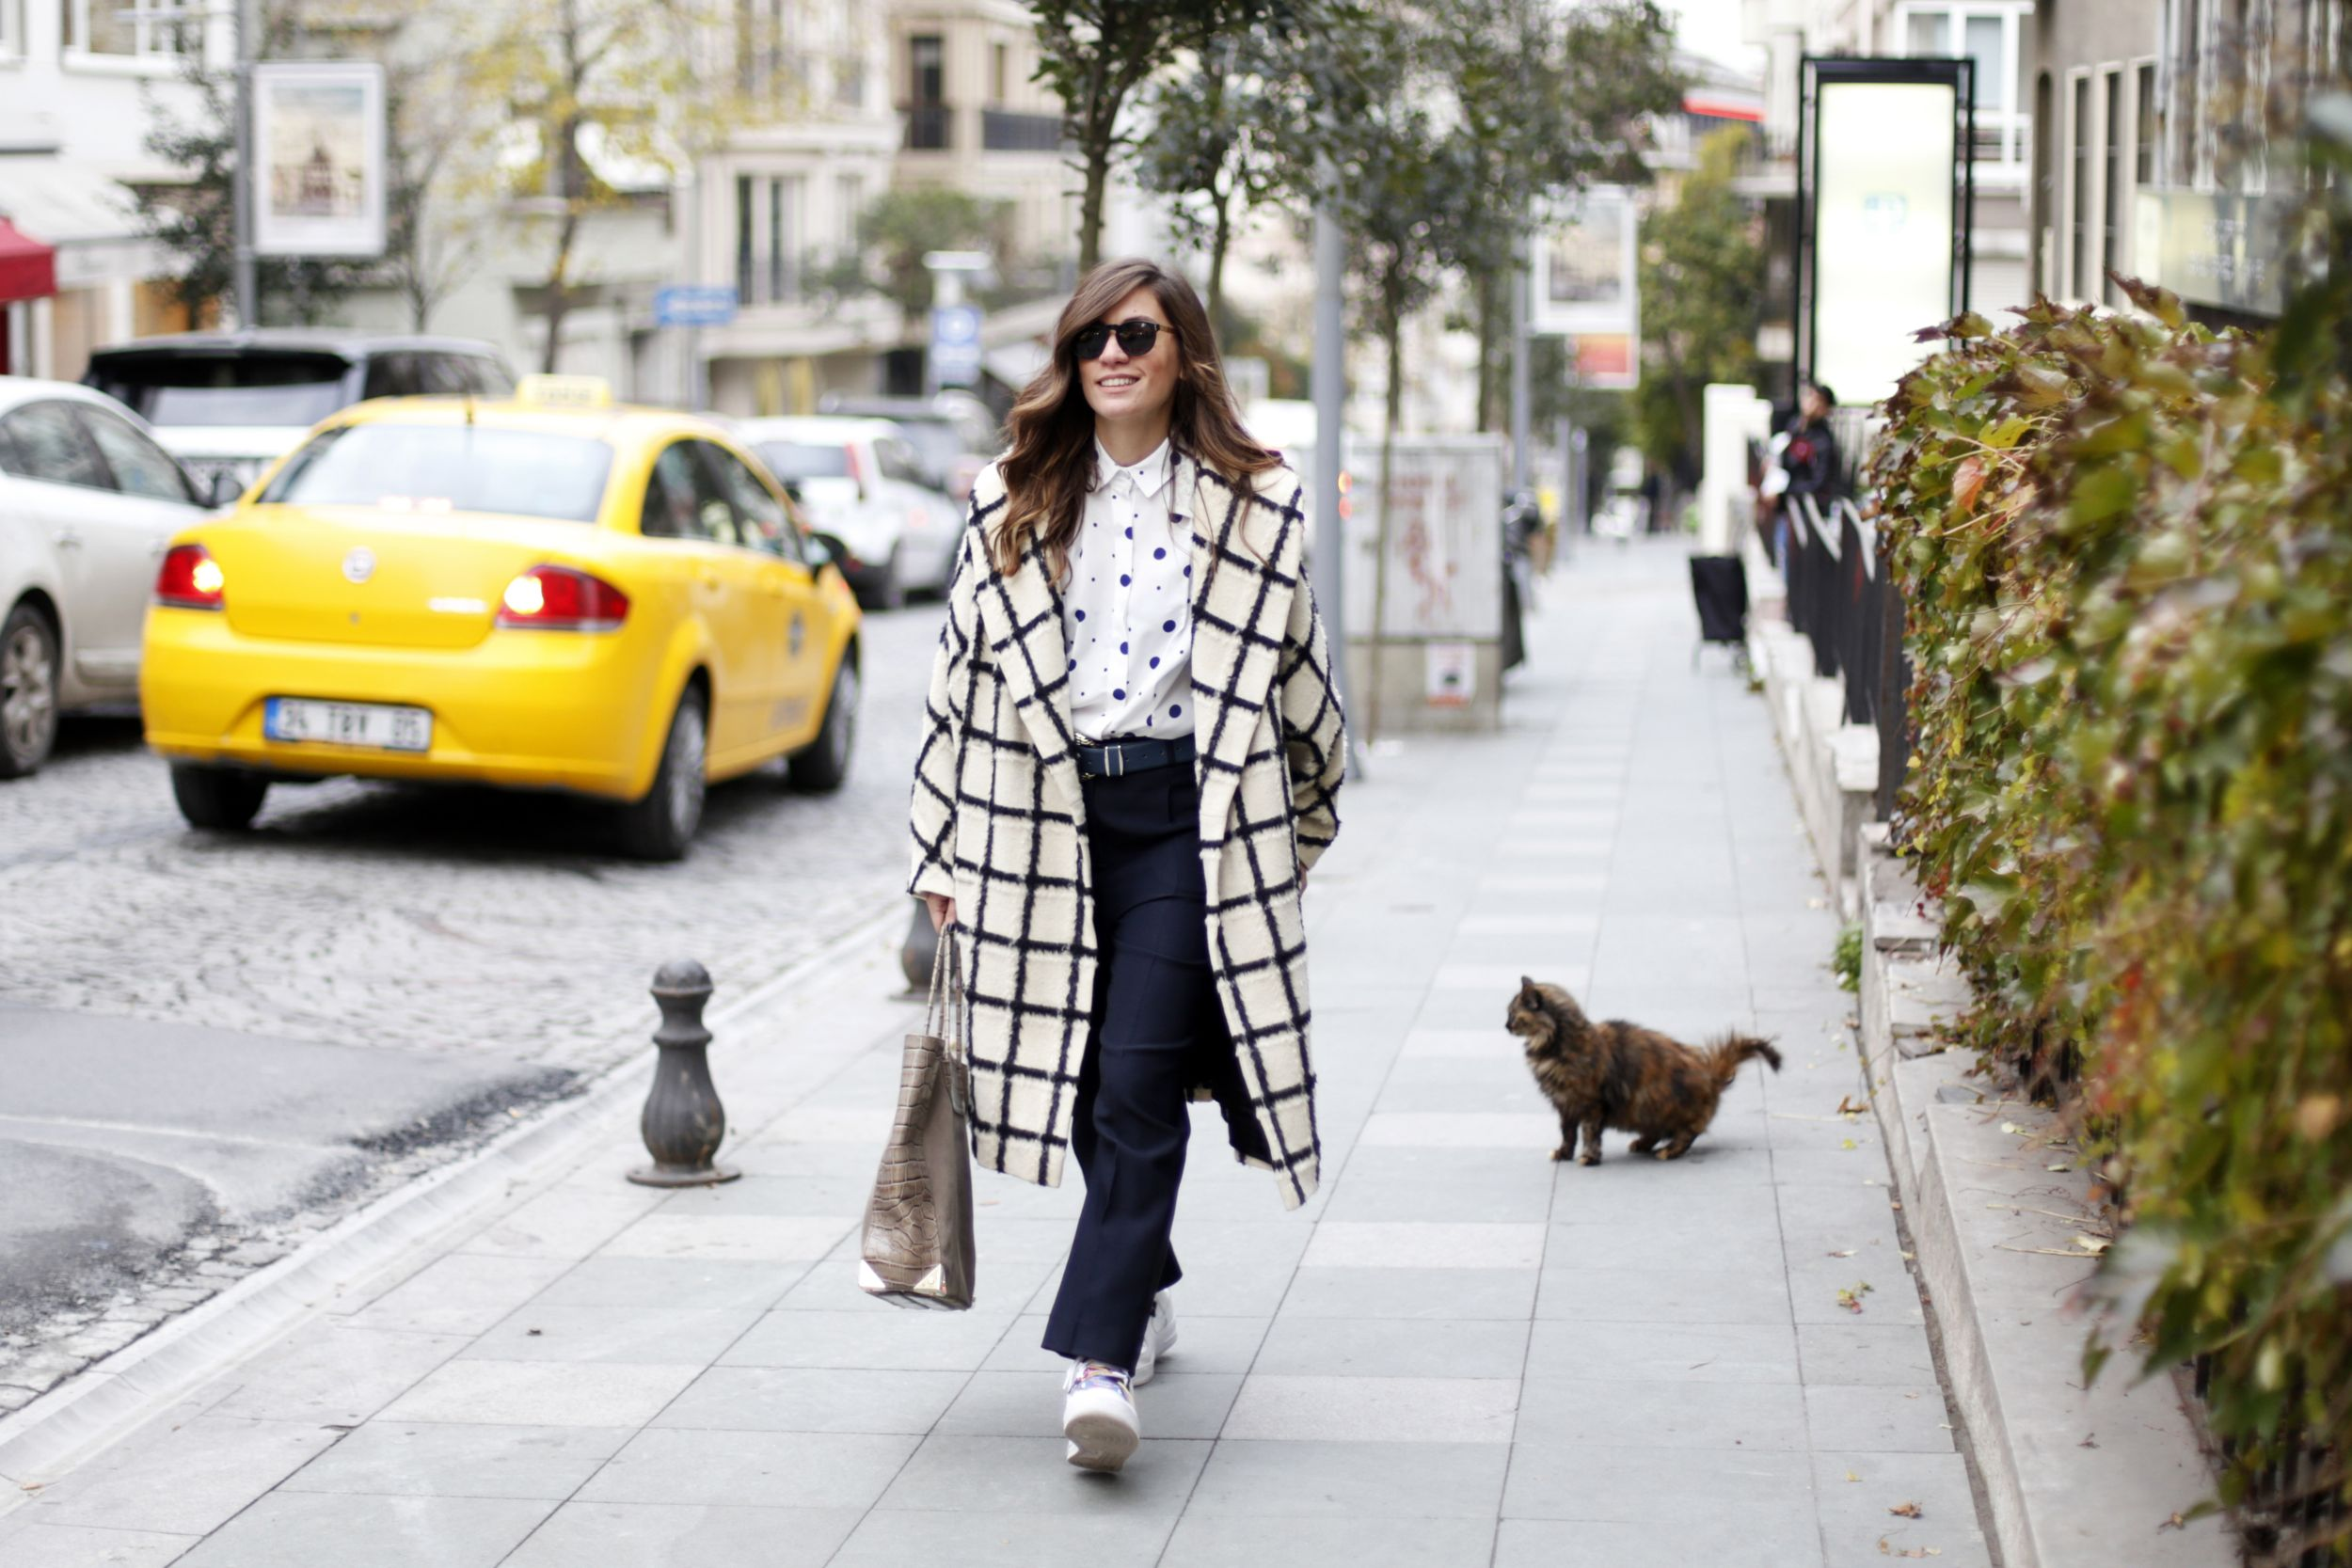 off ne giysem, street style, fey, video post, billur saatci, super sunglasses, nike, cos, alexander wang,